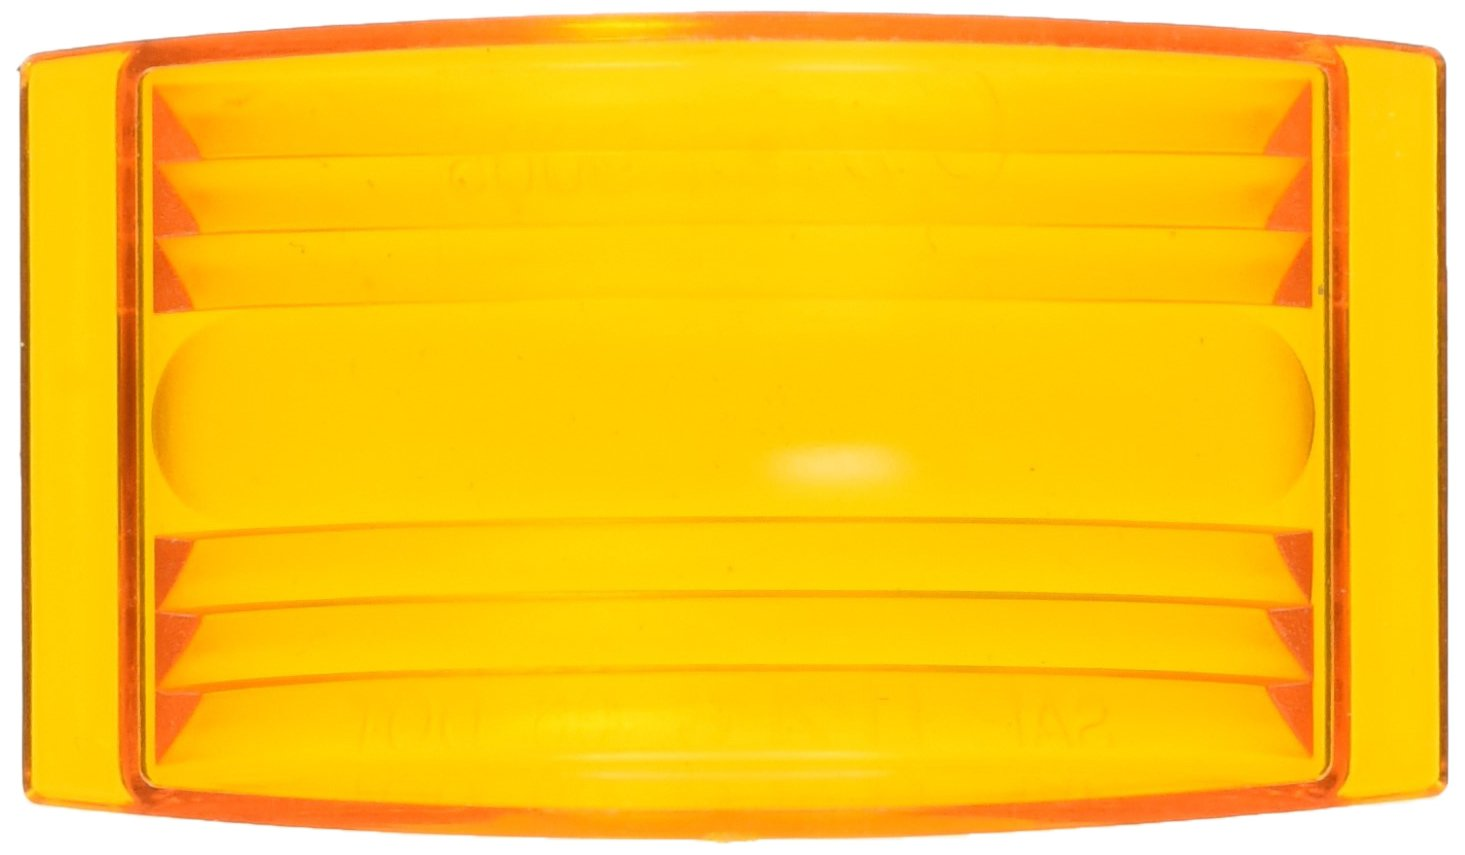 Armored Grote 90053 Yellow Clearance Marker Replacement Lenses